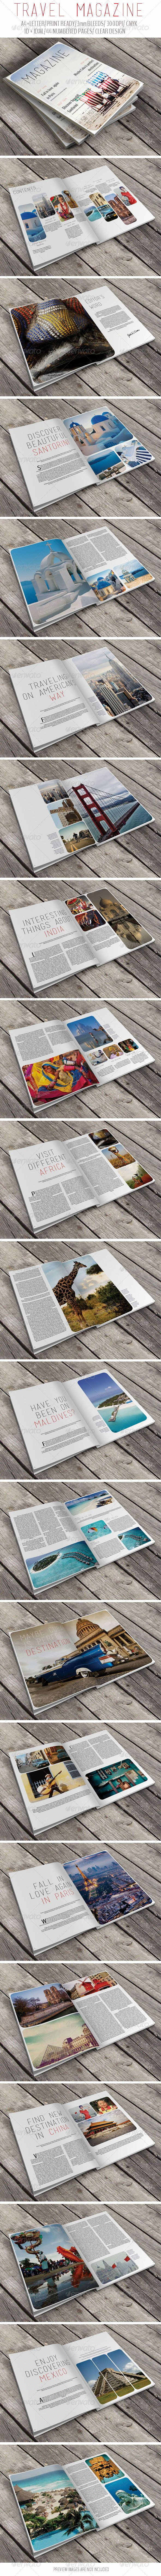 Travel Magazine — InDesign INDD #business #idml • Available here → https://graphicriver.net/item/travel-magazine/6643750?ref=pxcr